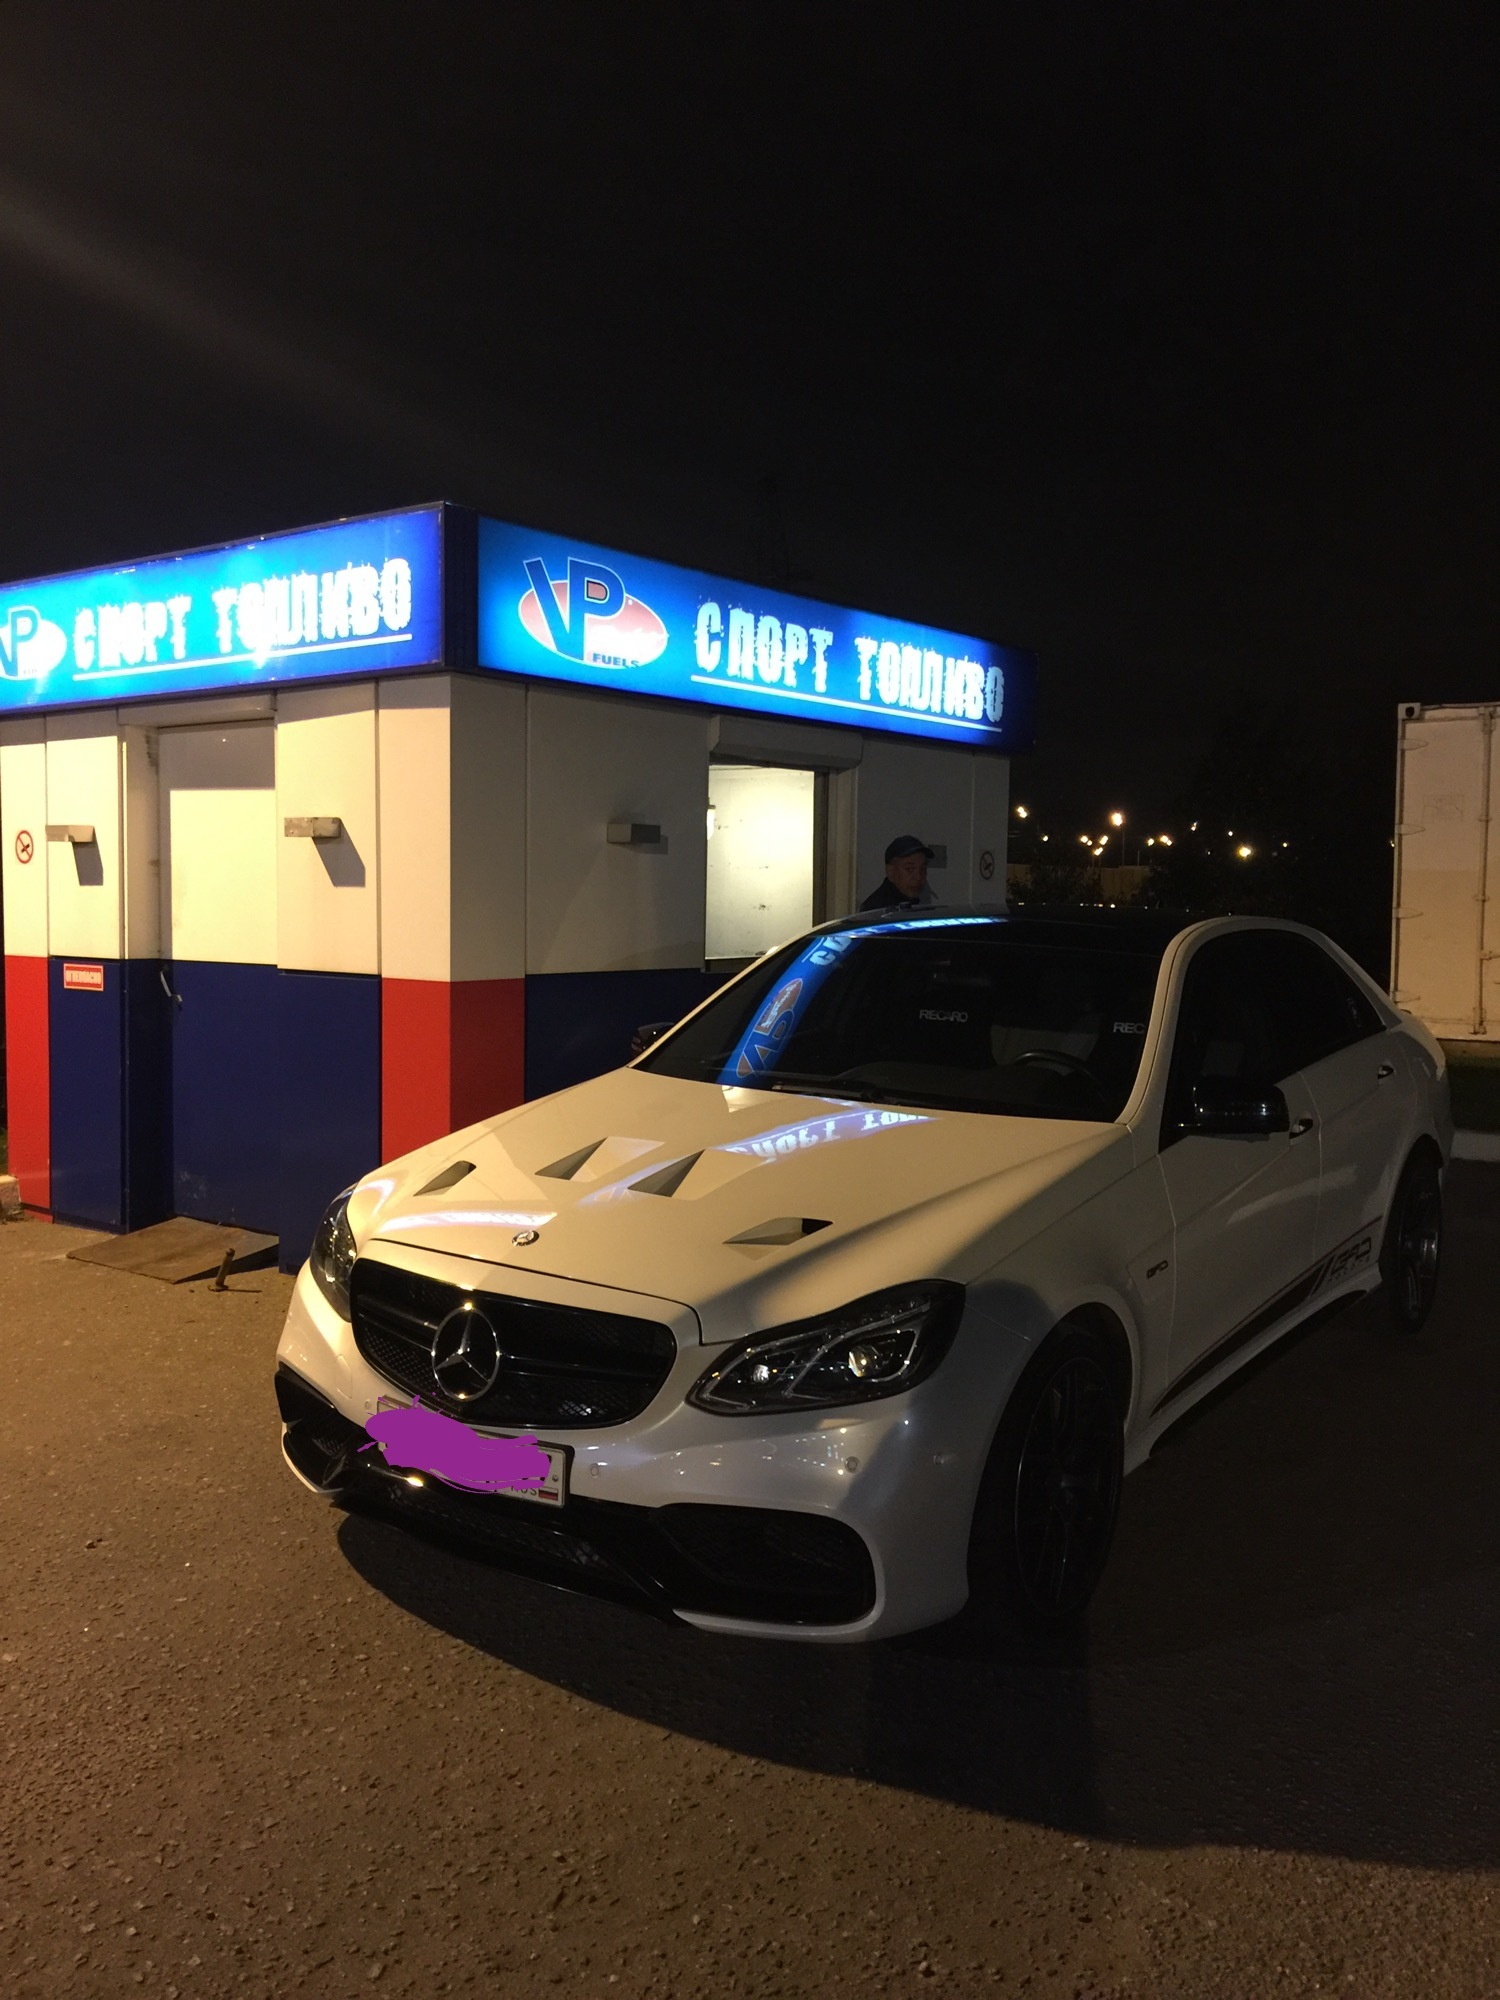 Diamond wight 2013 Mercedes-Benz E63 AMG S 4matik